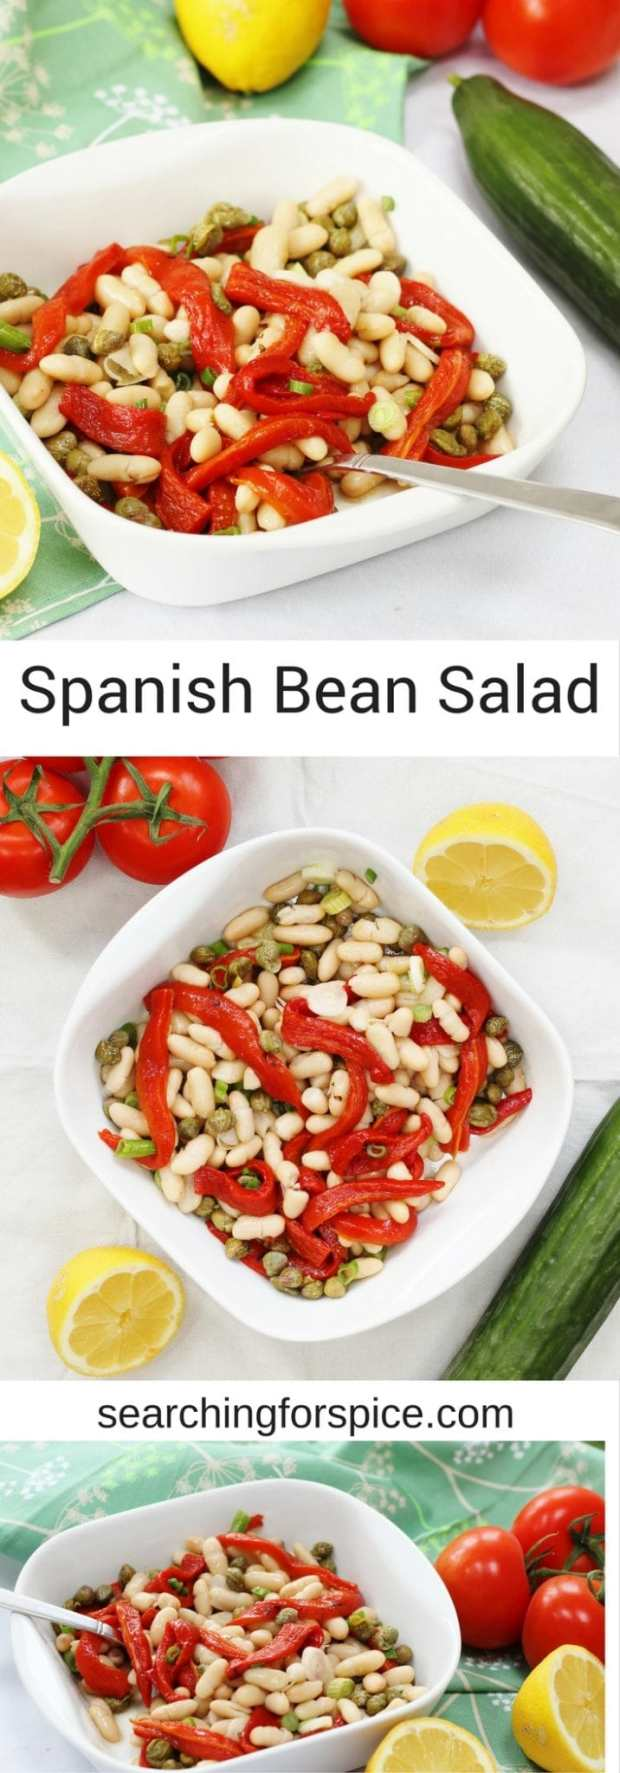 Delicious vegan recipe for a Spanish bean salad with red peppers, capers and spring onions. Made with store cupboard ingredients it's quick and easy make too